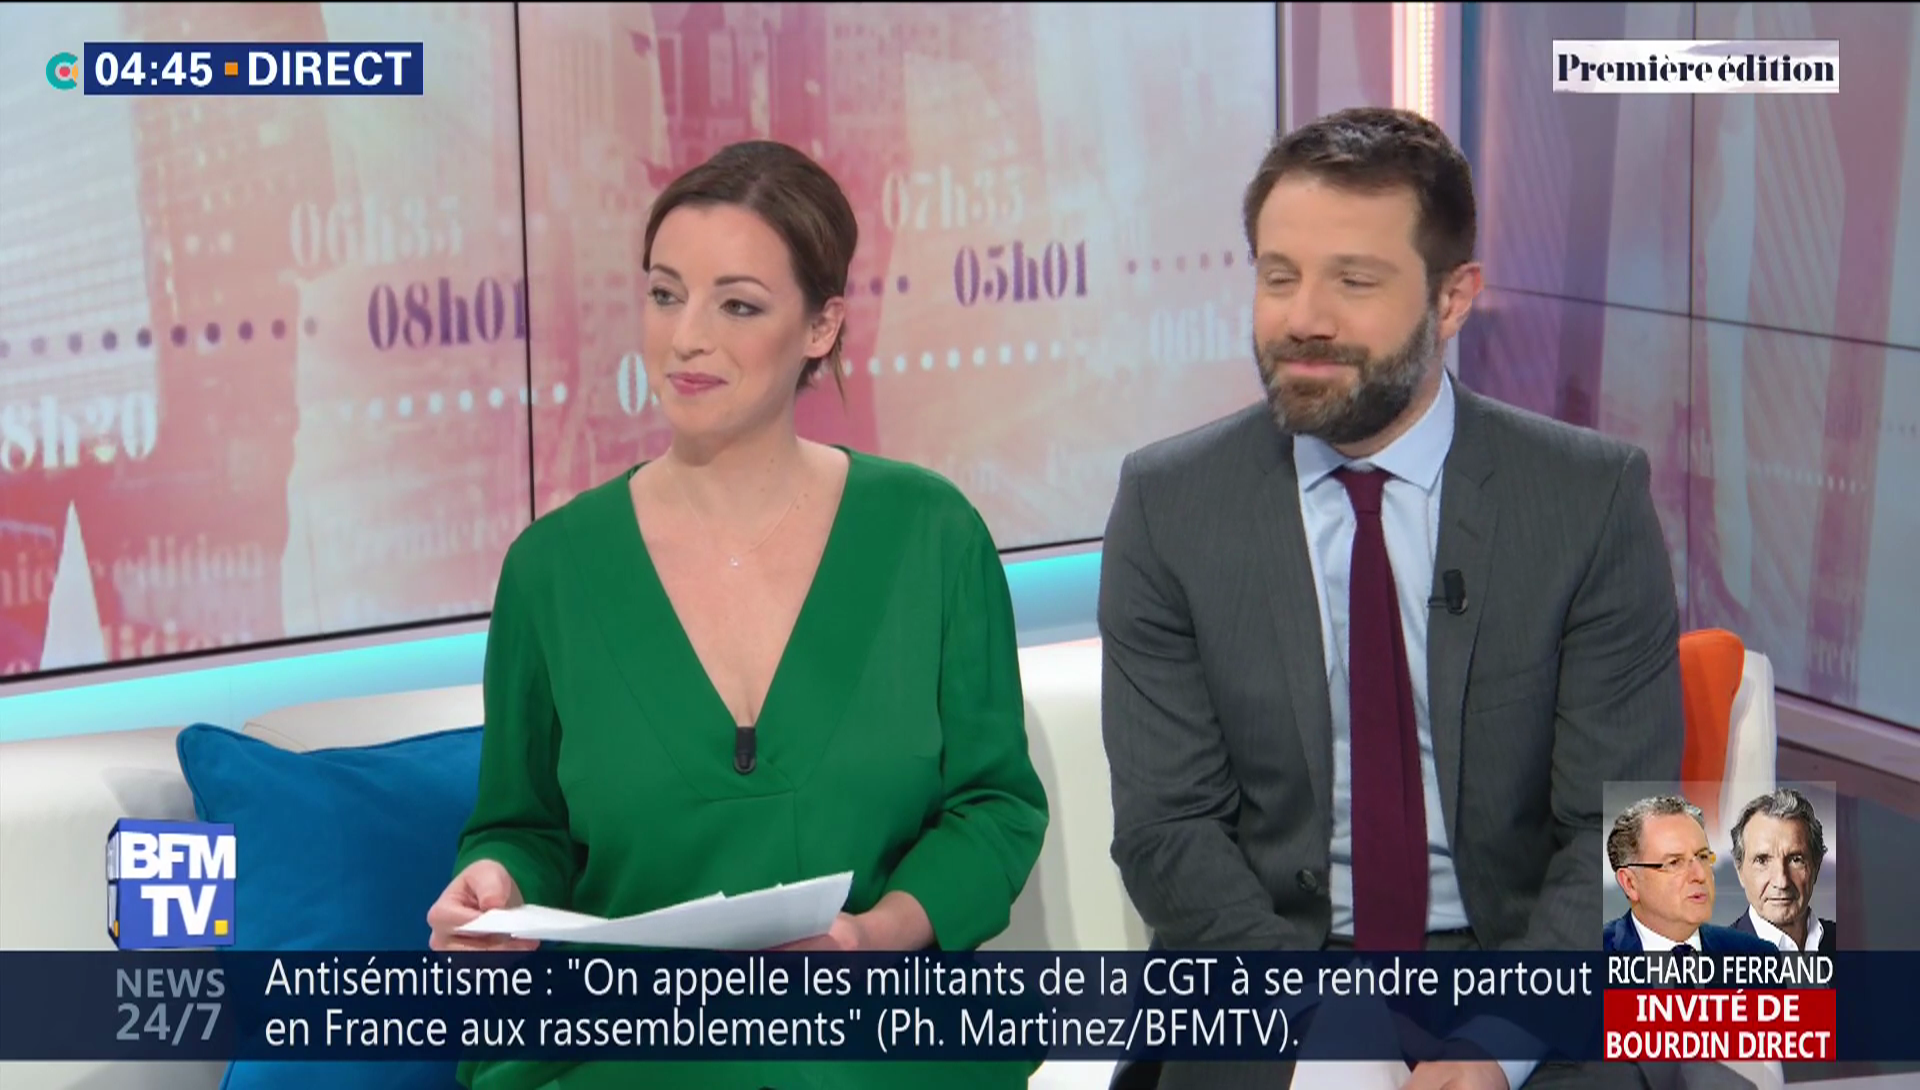 carolinedieudonne05.2019_02_19_journalpremiereeditionBFMTV